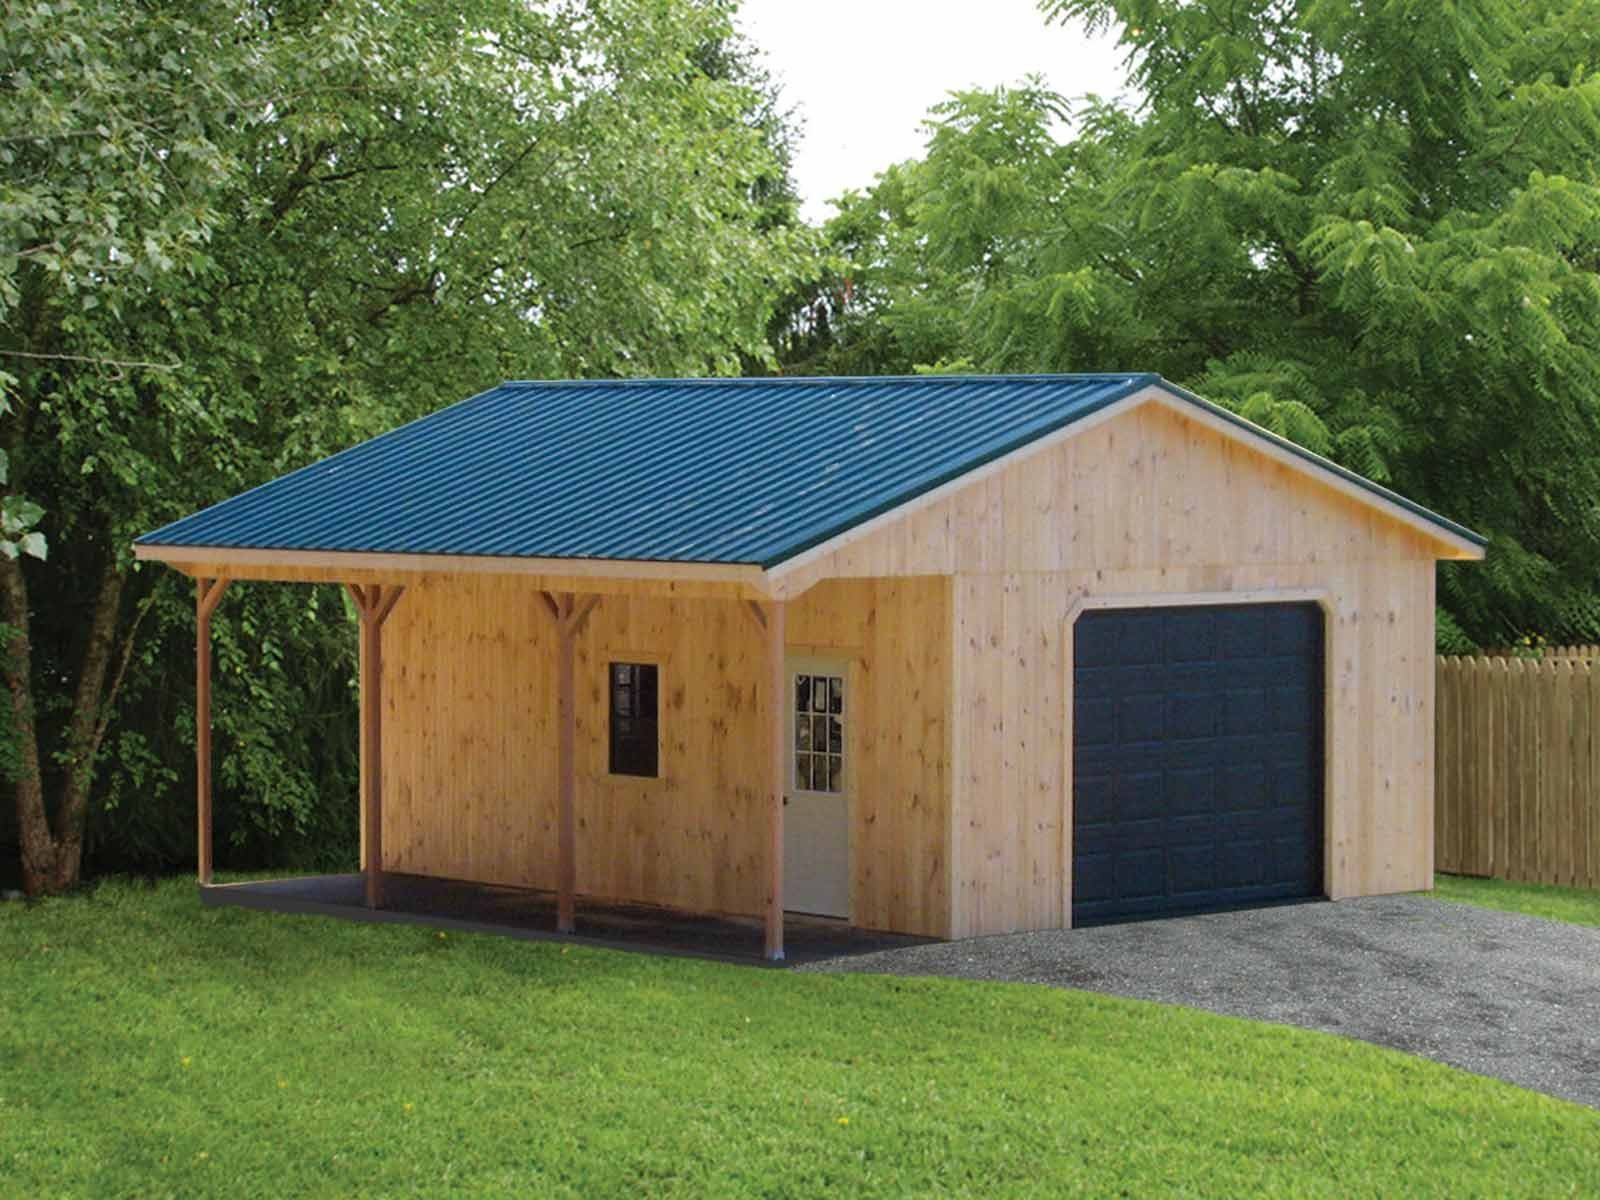 plans with story apartment amish of car garages garage pictures inspirational unique house